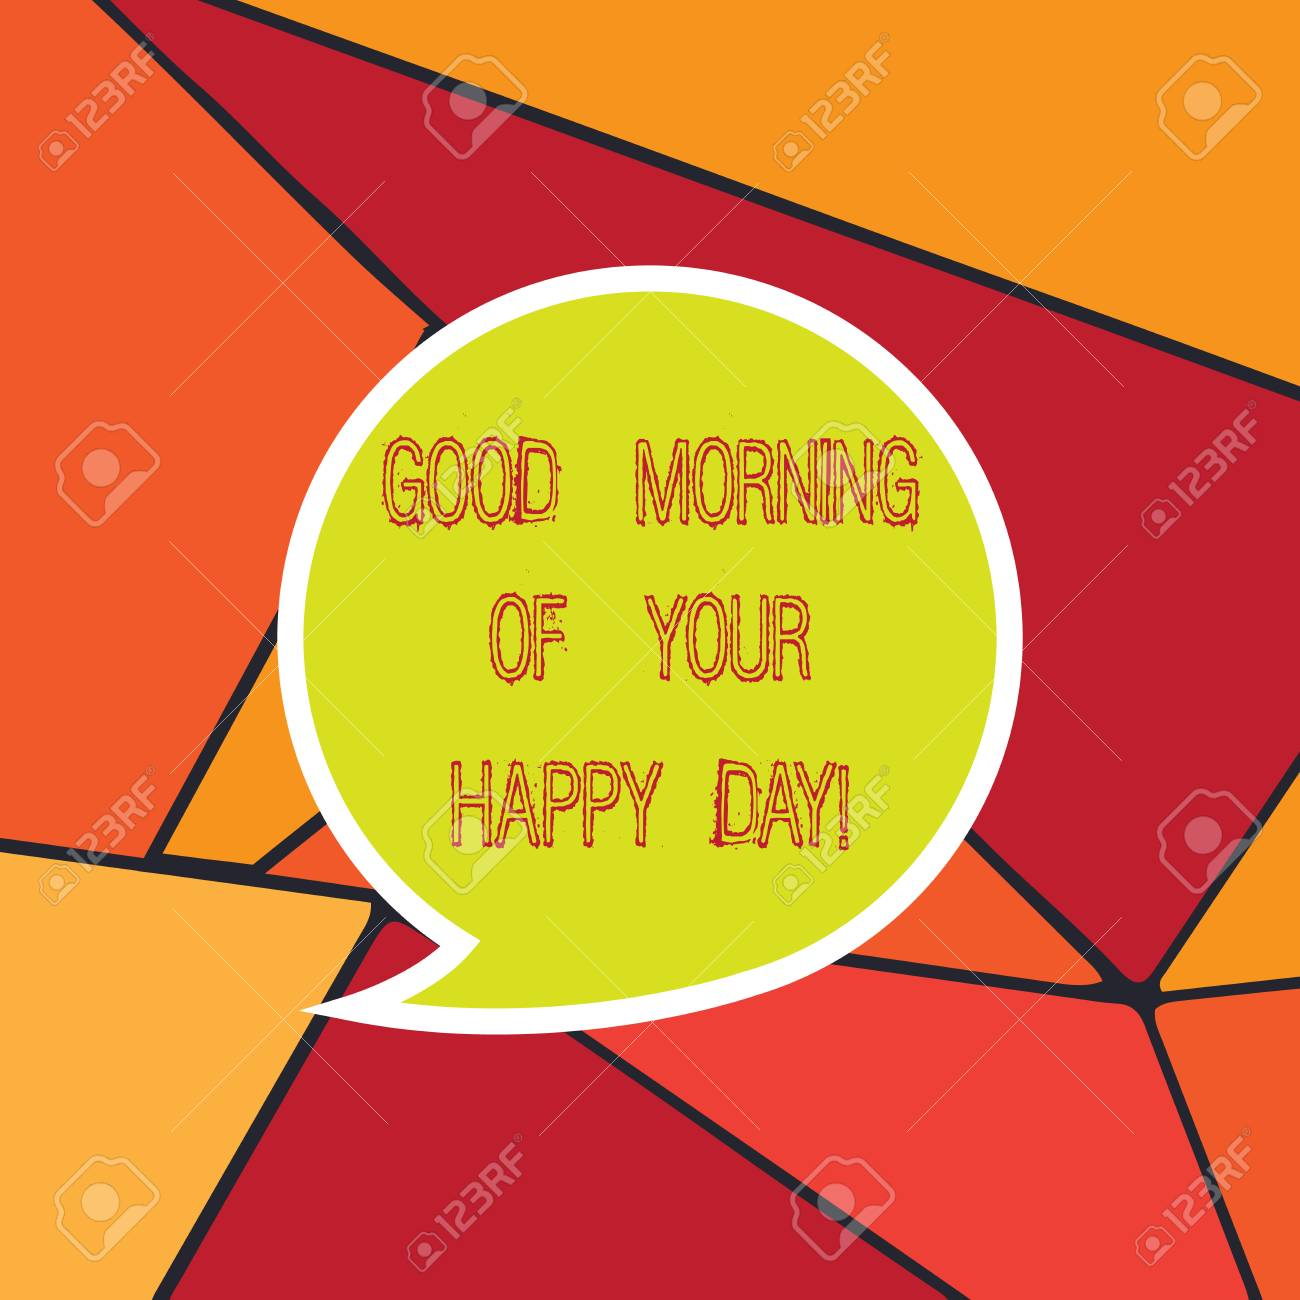 Handwriting Text Good Morning Of Your Happy Day Concept Meaning Stock Photo Picture And Royalty Free Image Image 112857681